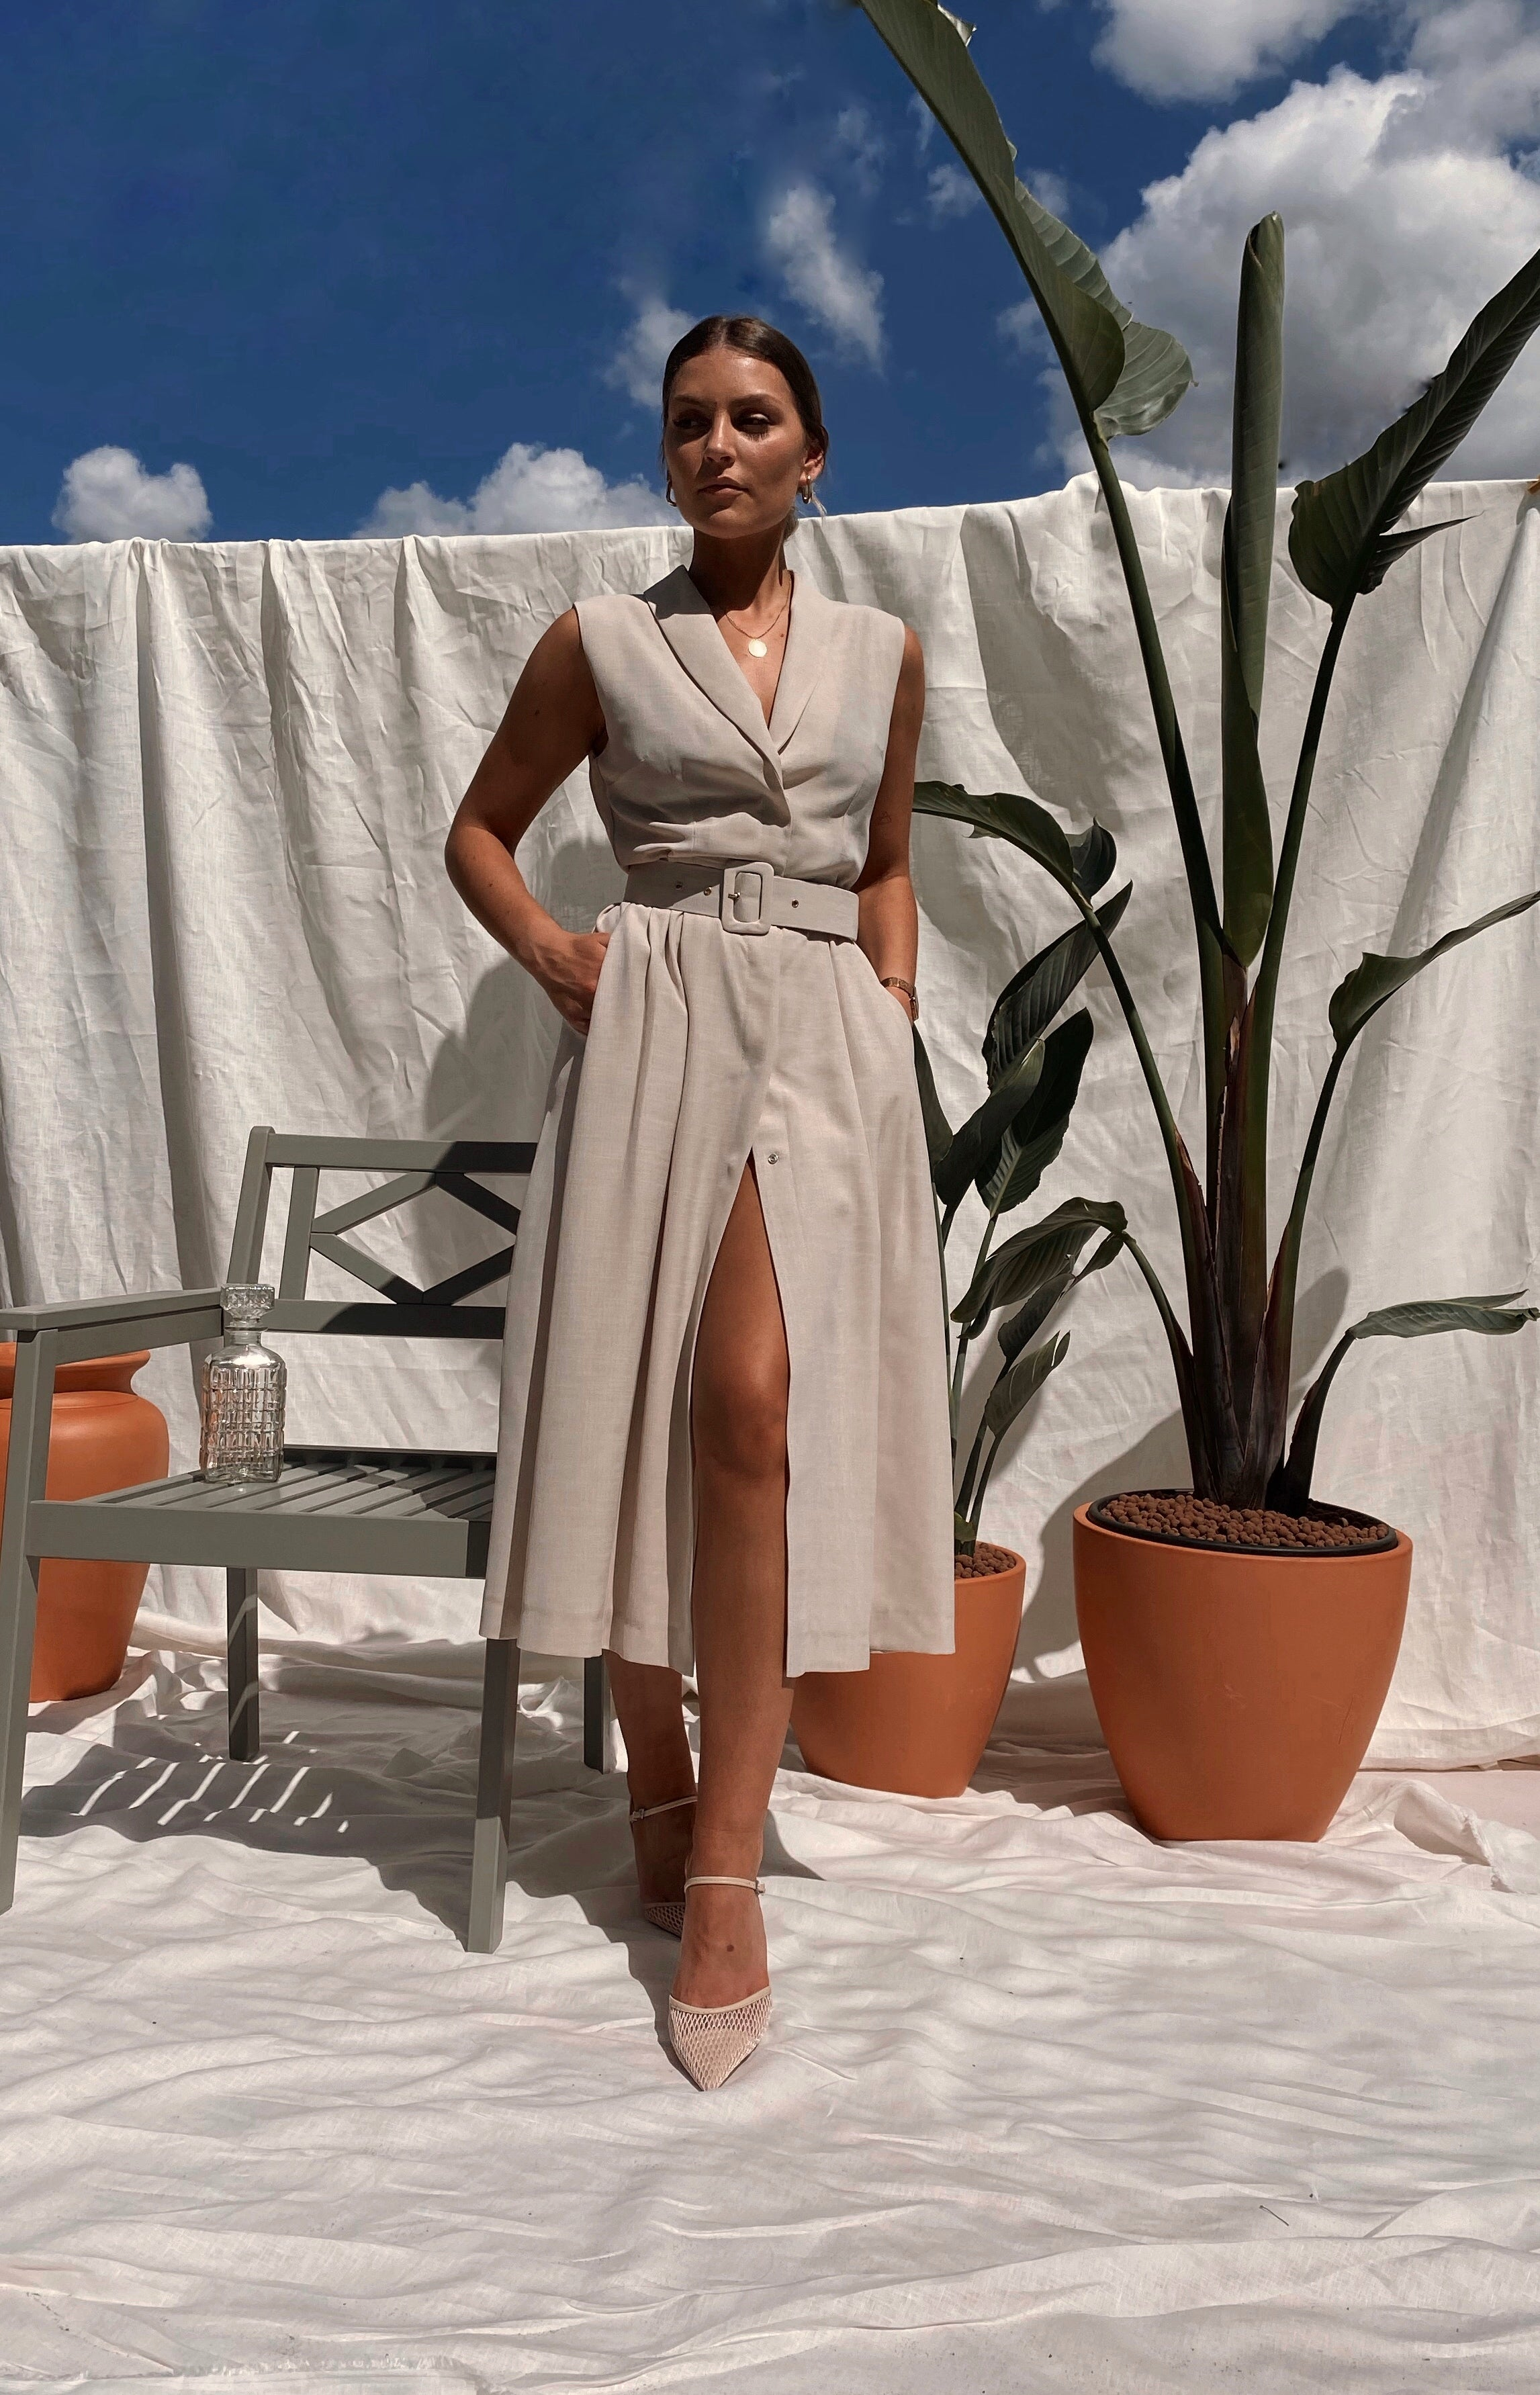 The Riviera Dress - Made to order